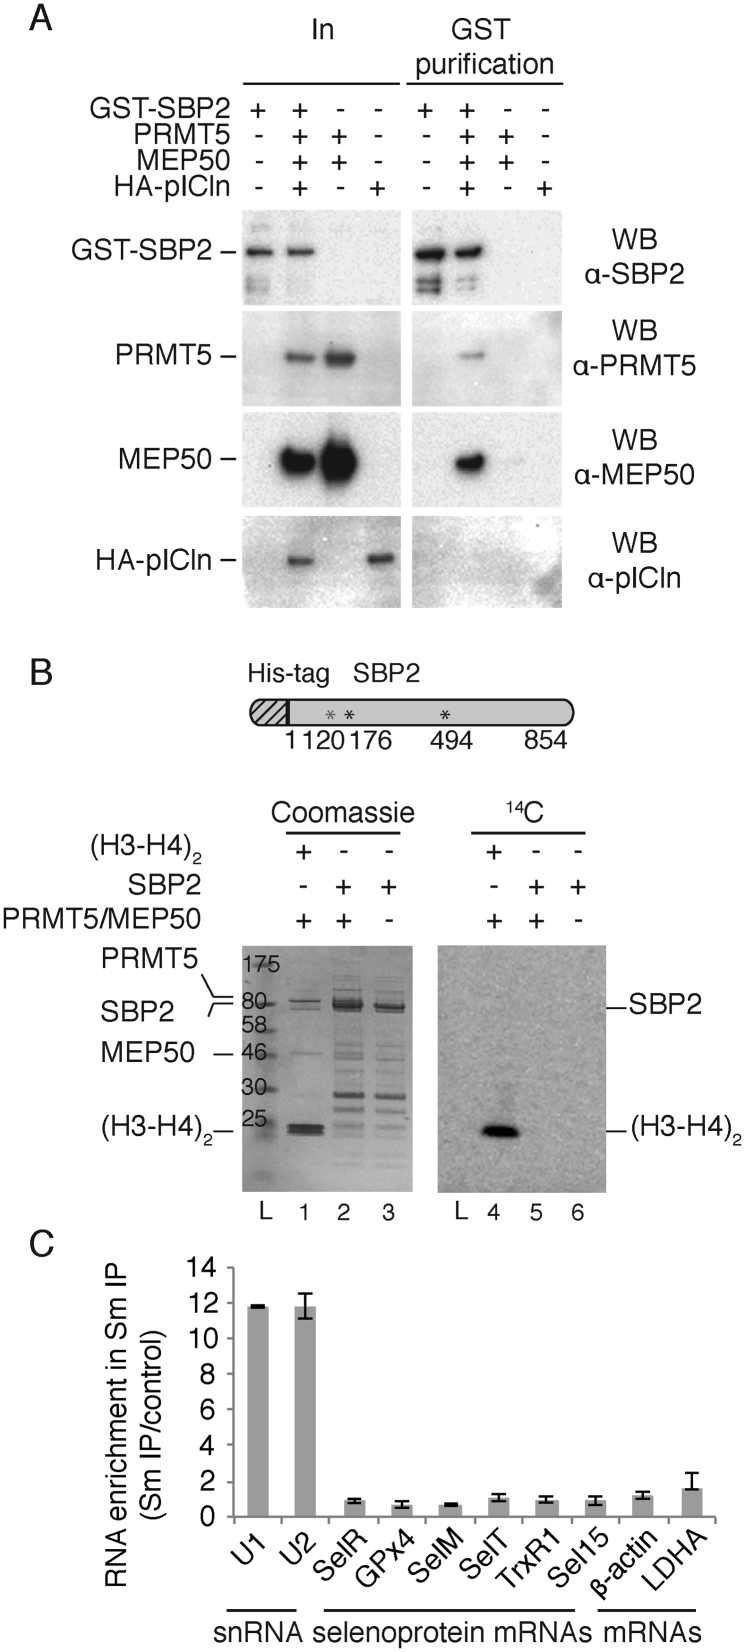 Reconstitution and activity of the SBP2/methylosome complex and functional analysis ( A ) Coexpression and purification of SBP2 associated with the methylosome complex. Recombinant baculoviruses allowing the expression of GST-SBP2, PRMT5, MEP50 and HA-pICln were used to infect Sf9 insect cells in the combinations indicated. Expression of PRMT5/MEP50 and HA-pICln alone served as negative controls. The complexes associated to GST-SBP2 were purified on Glutathione Sepharose, and the associated proteins were analyzed by SDS-PAGE and western blotting using the indicated antibodies. In: input (4% of the total cell extract). ( B ) SBP2 is not a substrate of PRMT5/MEP50. For methylation assays PRMT5/MEP50 was incubated with SBP2 or histones (H3-H4) 2 in the presence of 14 C SAM for 30 min at 37°C. The (H3-H4) 2 tetramer is a methylation substrate of the methylosome and therefore serves as a positive control. Proteins are analyzed on SDS-PAGE and revealed by coomassie staining (lanes 1–3). The radioactive methylation signal is revealed by phosphorImager after overnight exposure (lanes 4–6). The cartoon represents His-Tag SBP2 and the position of the RG sequences (*) that are potential sites of methylation. L: ladder. ( C ) Sm proteins do not bind selenoprotein mRNAs. Total RNA extracted from HEK293FT cells was immunoprecipitated with anti-Sm antibodies. qRT-PCR was used to determine the RNA enrichment in the IP experiment compared to the input extract by the ΔΔCt method. SelR, GPx4, SelM, SelT, TrxR1 and Sel15 are selenoprotein mRNAs. U1 and U2 snRNAs were used as positive controls; ß-actin and LDHA mRNAs are housekeeping mRNAs used as negative controls. Error bars represent standard deviation of an average of three independent experiments.